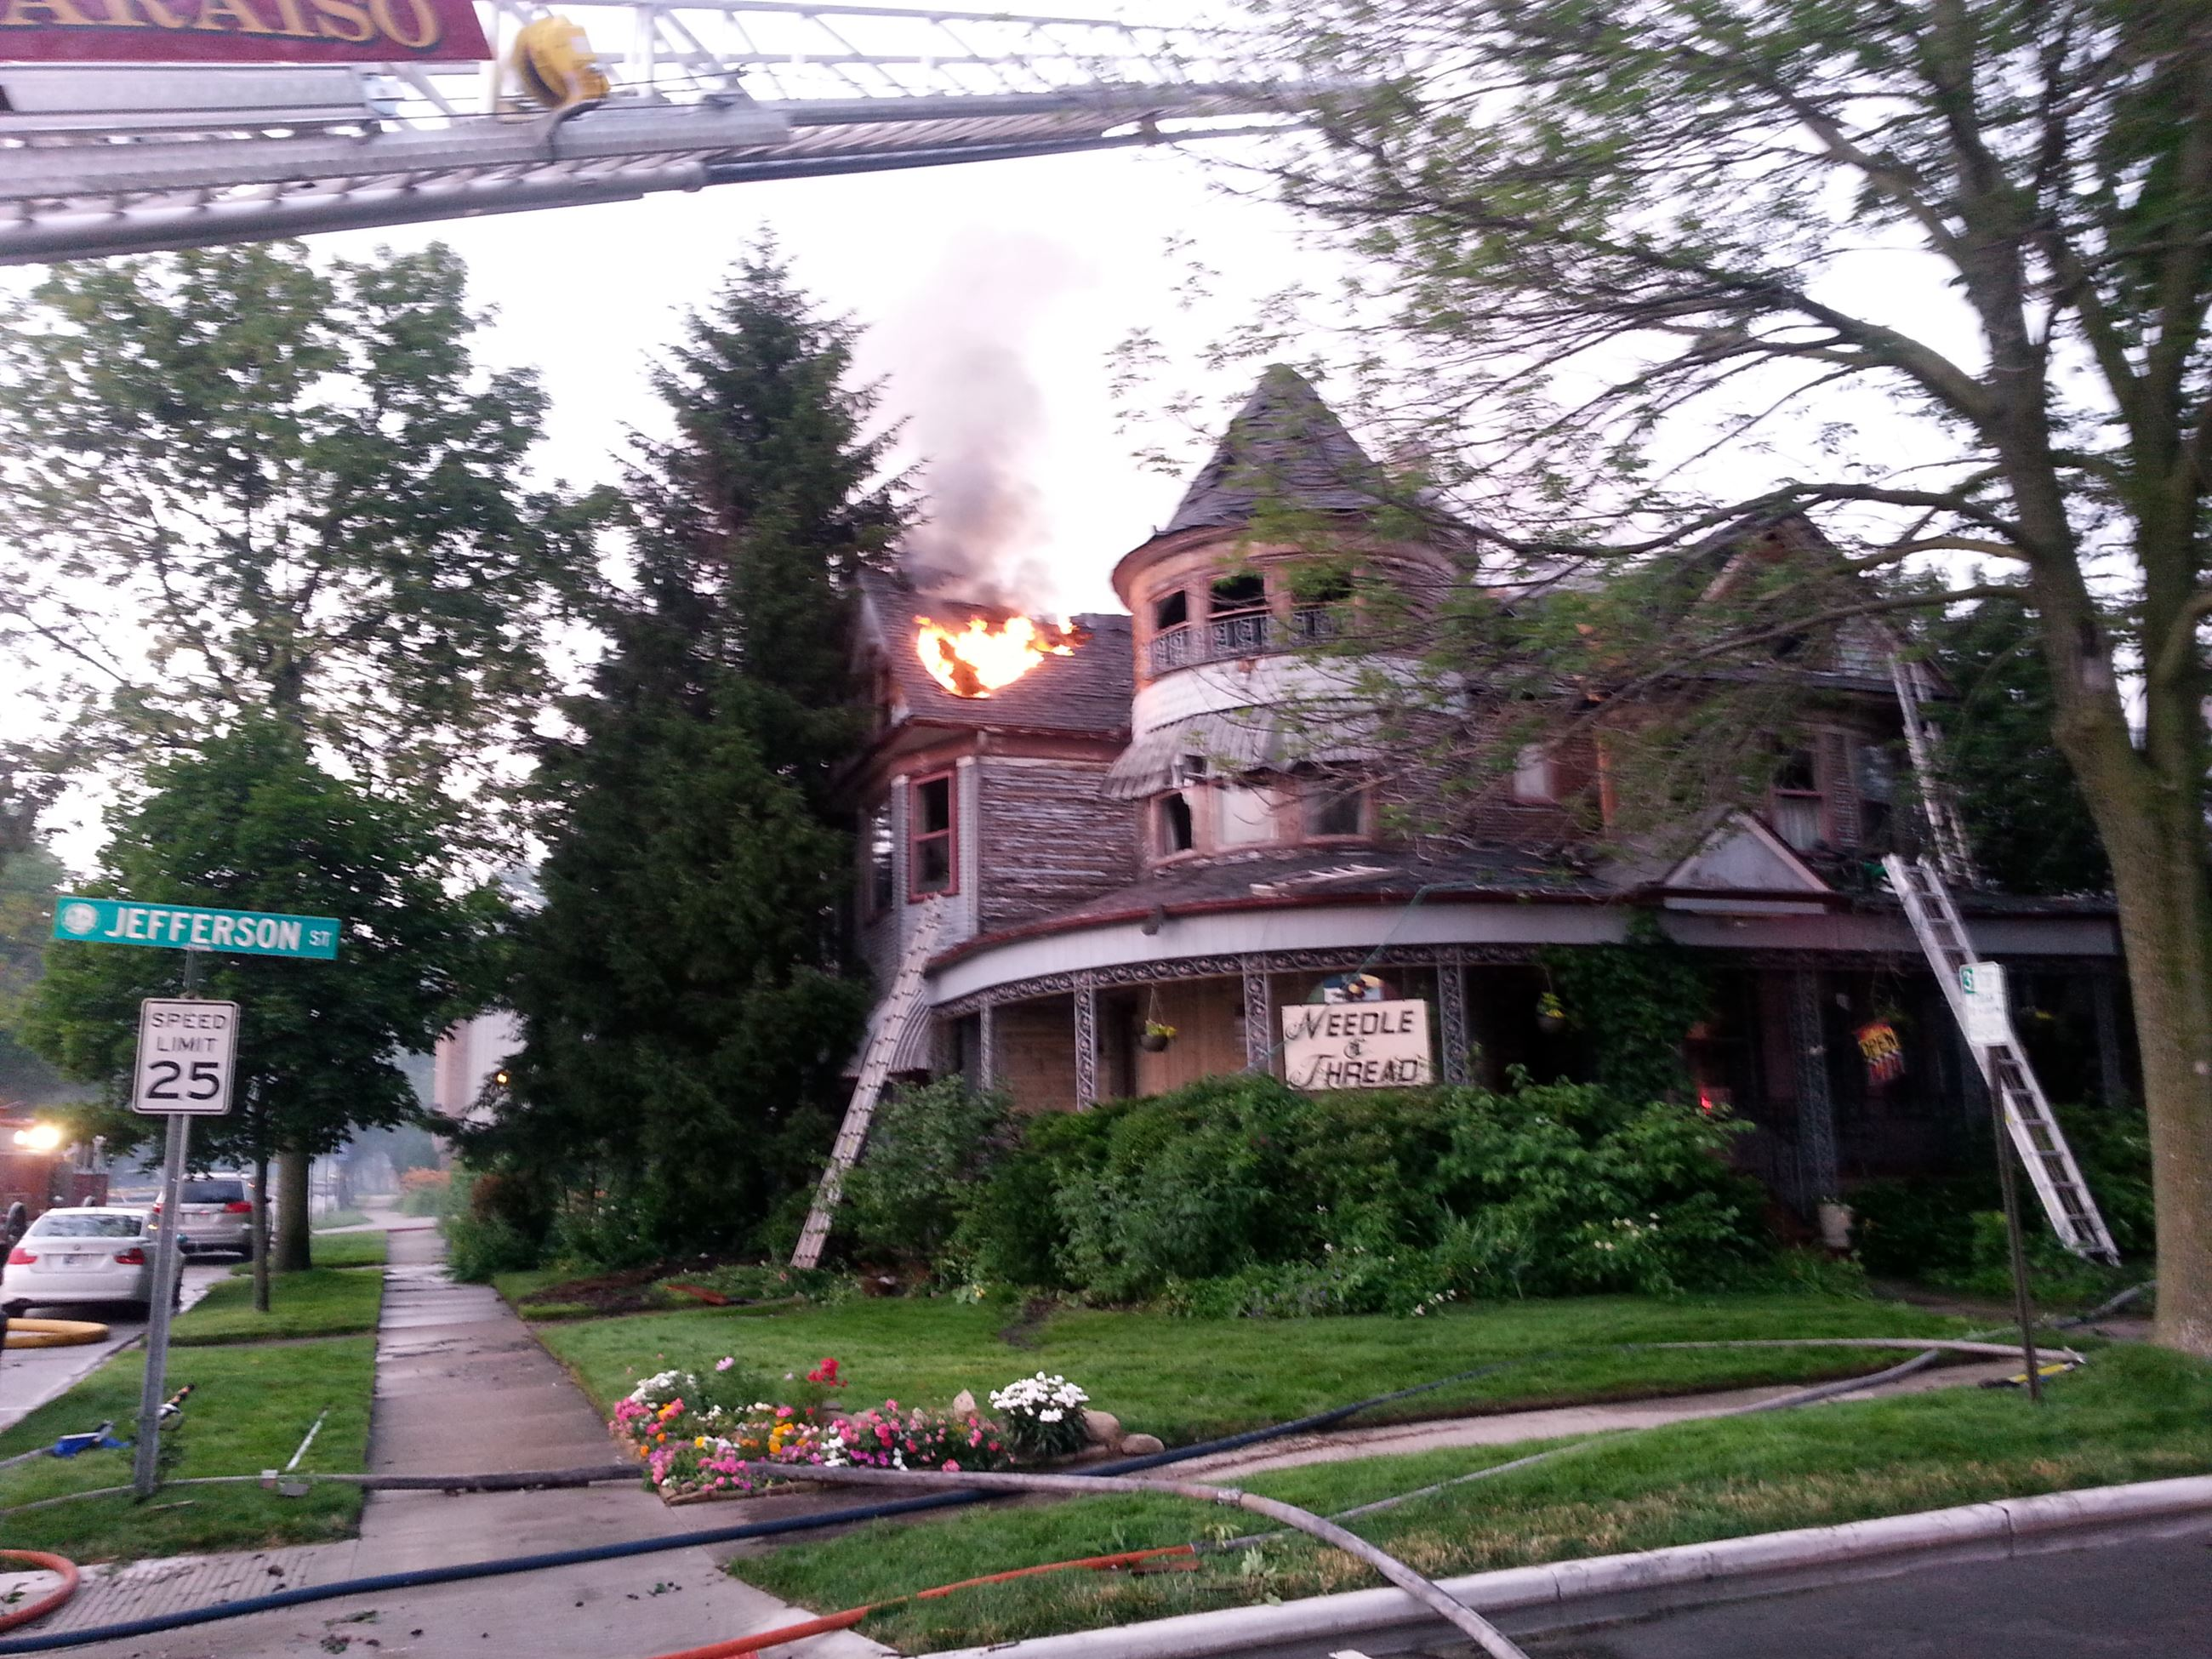 Jefferson St. Fire - 2013